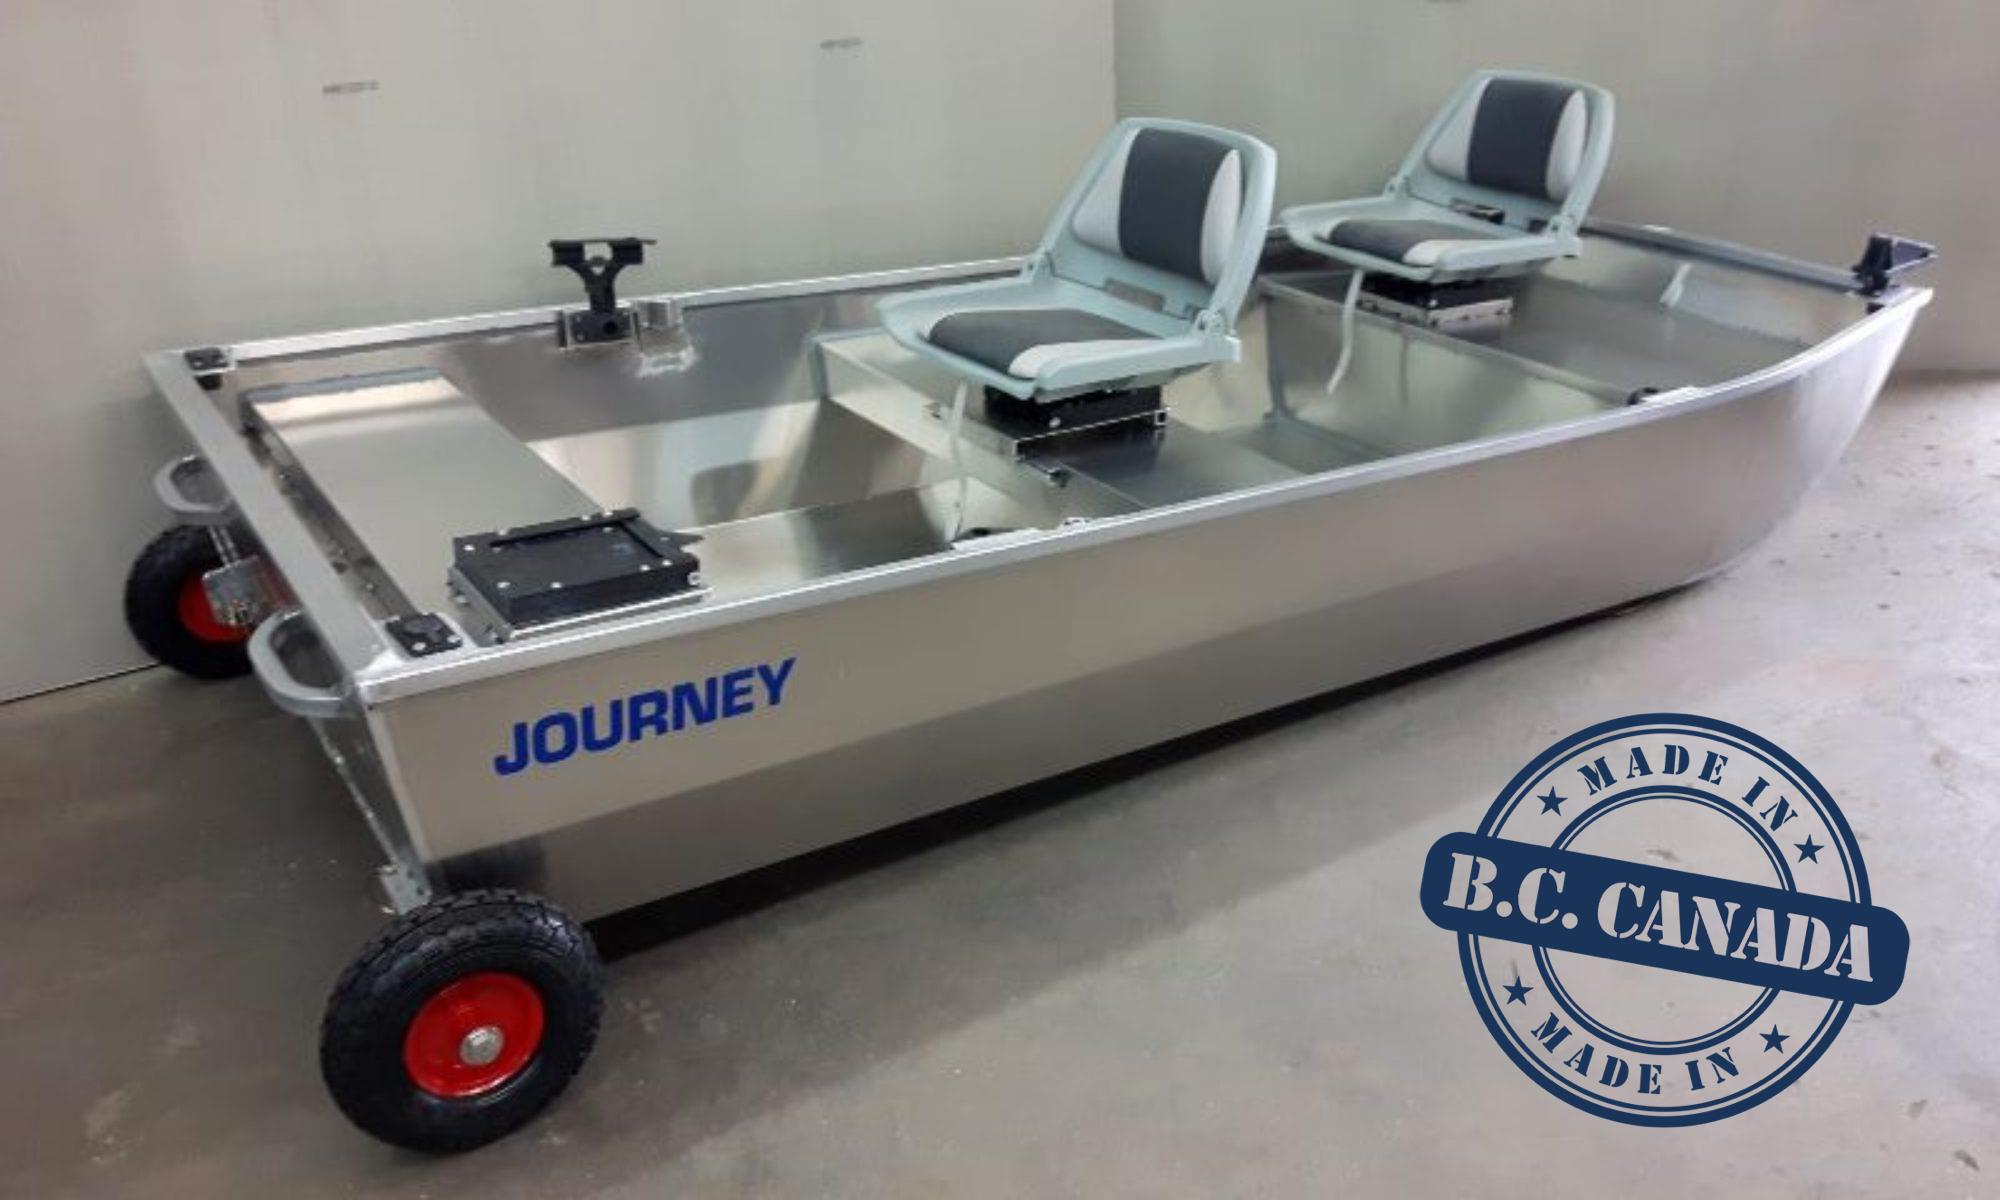 journeyboats.ca